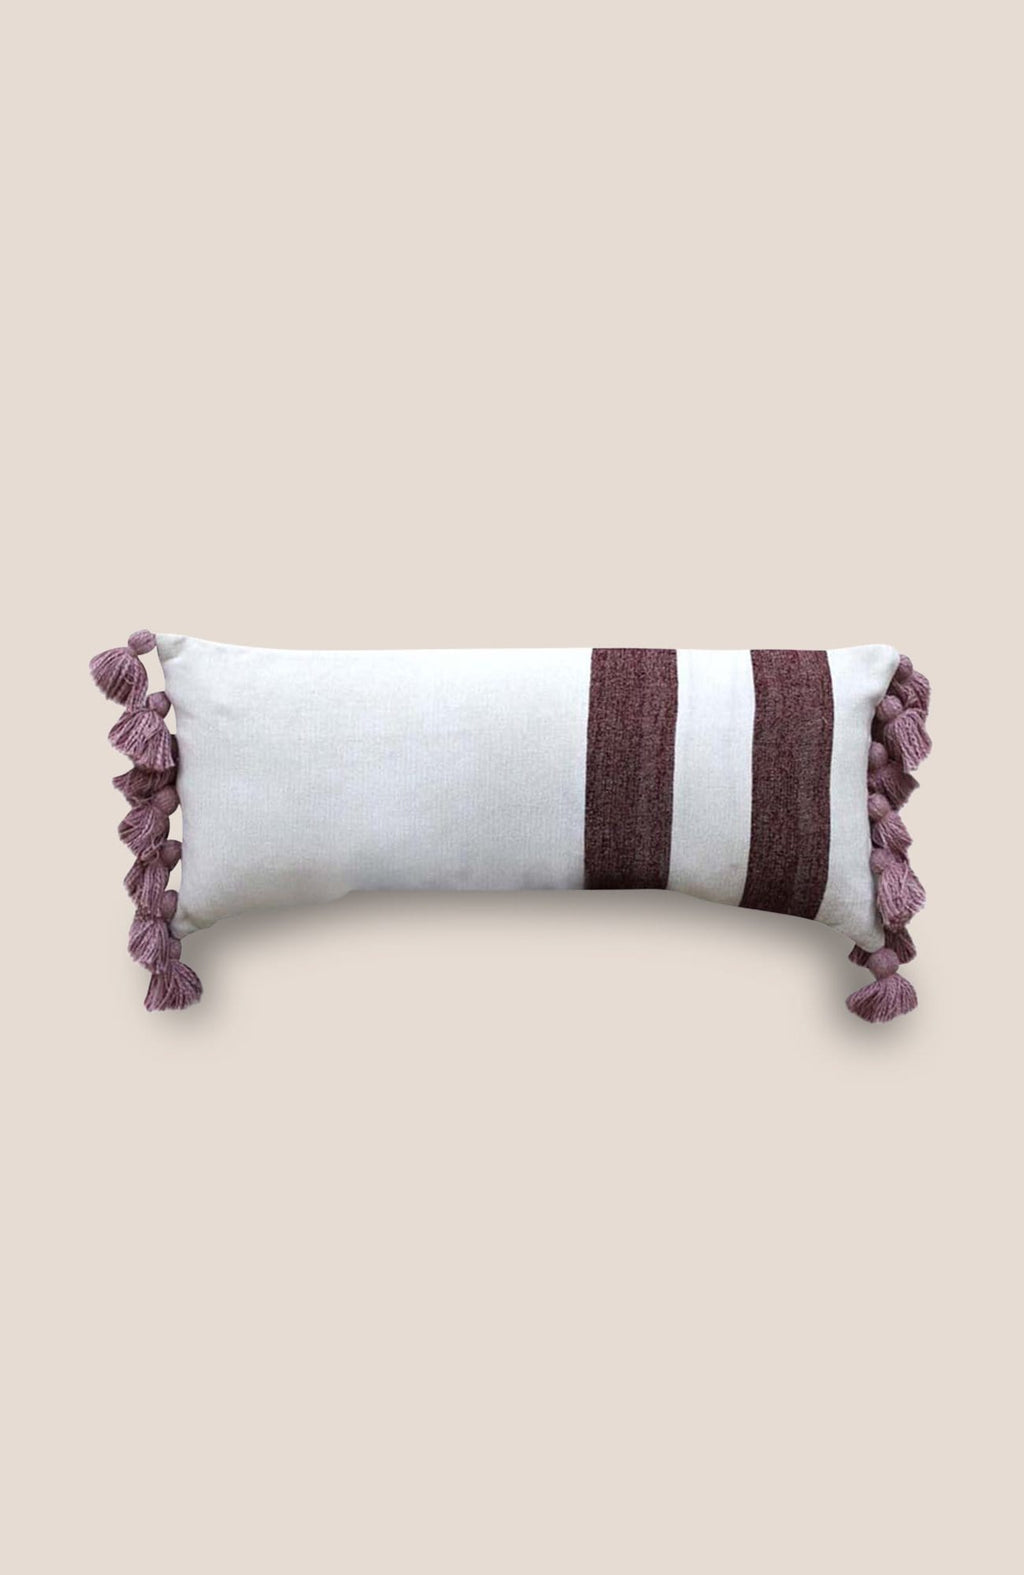 Pompon Pillow Cover Kia - Home Decor | Shop Baskets, Ceramics, Pillows, Rugs & Wall Hangs online